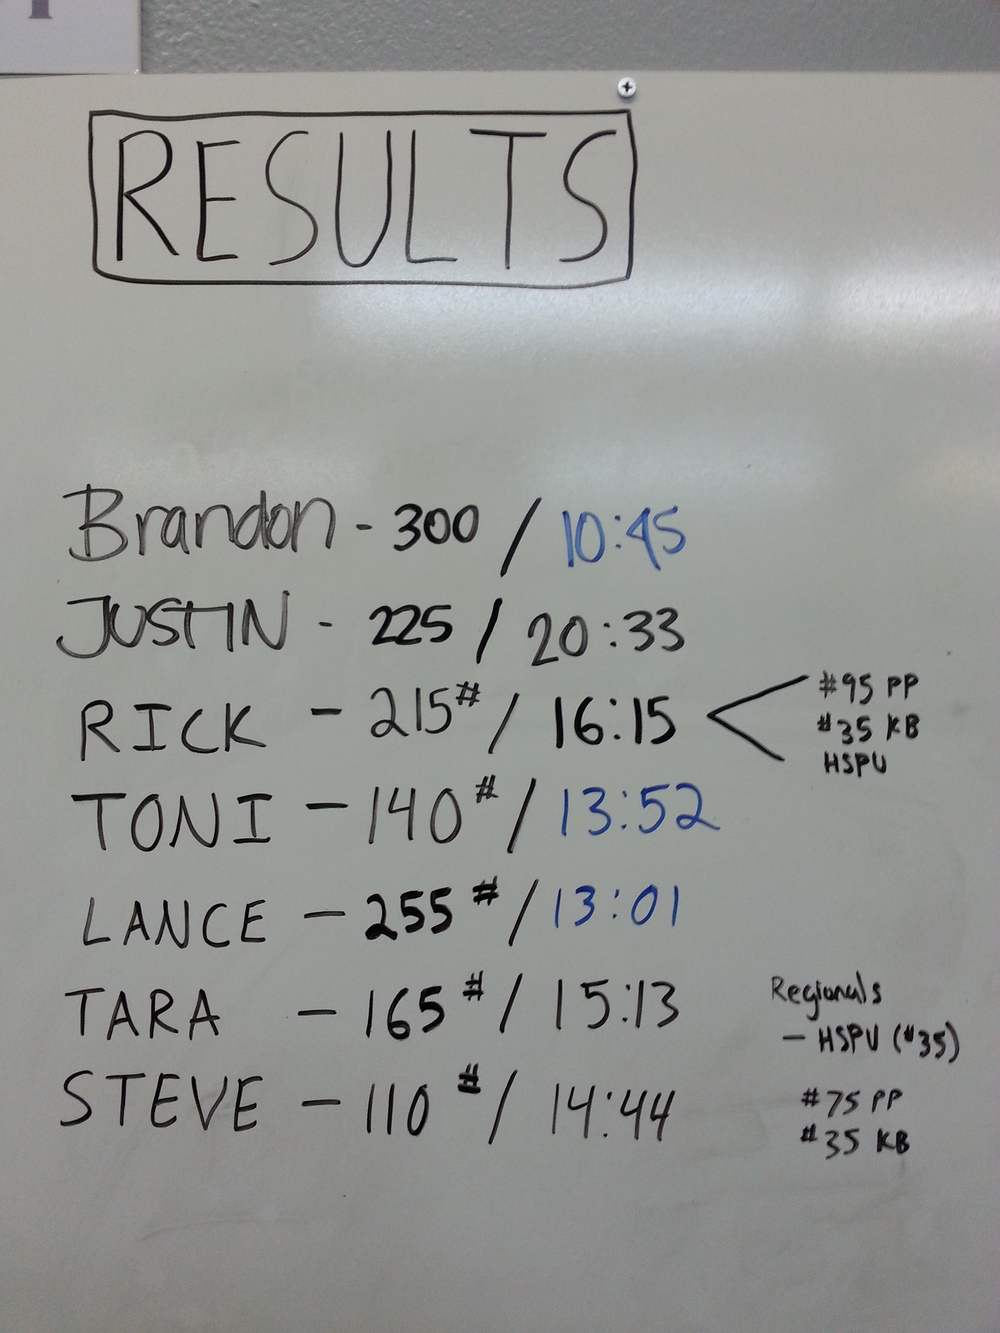 Results from 6/24